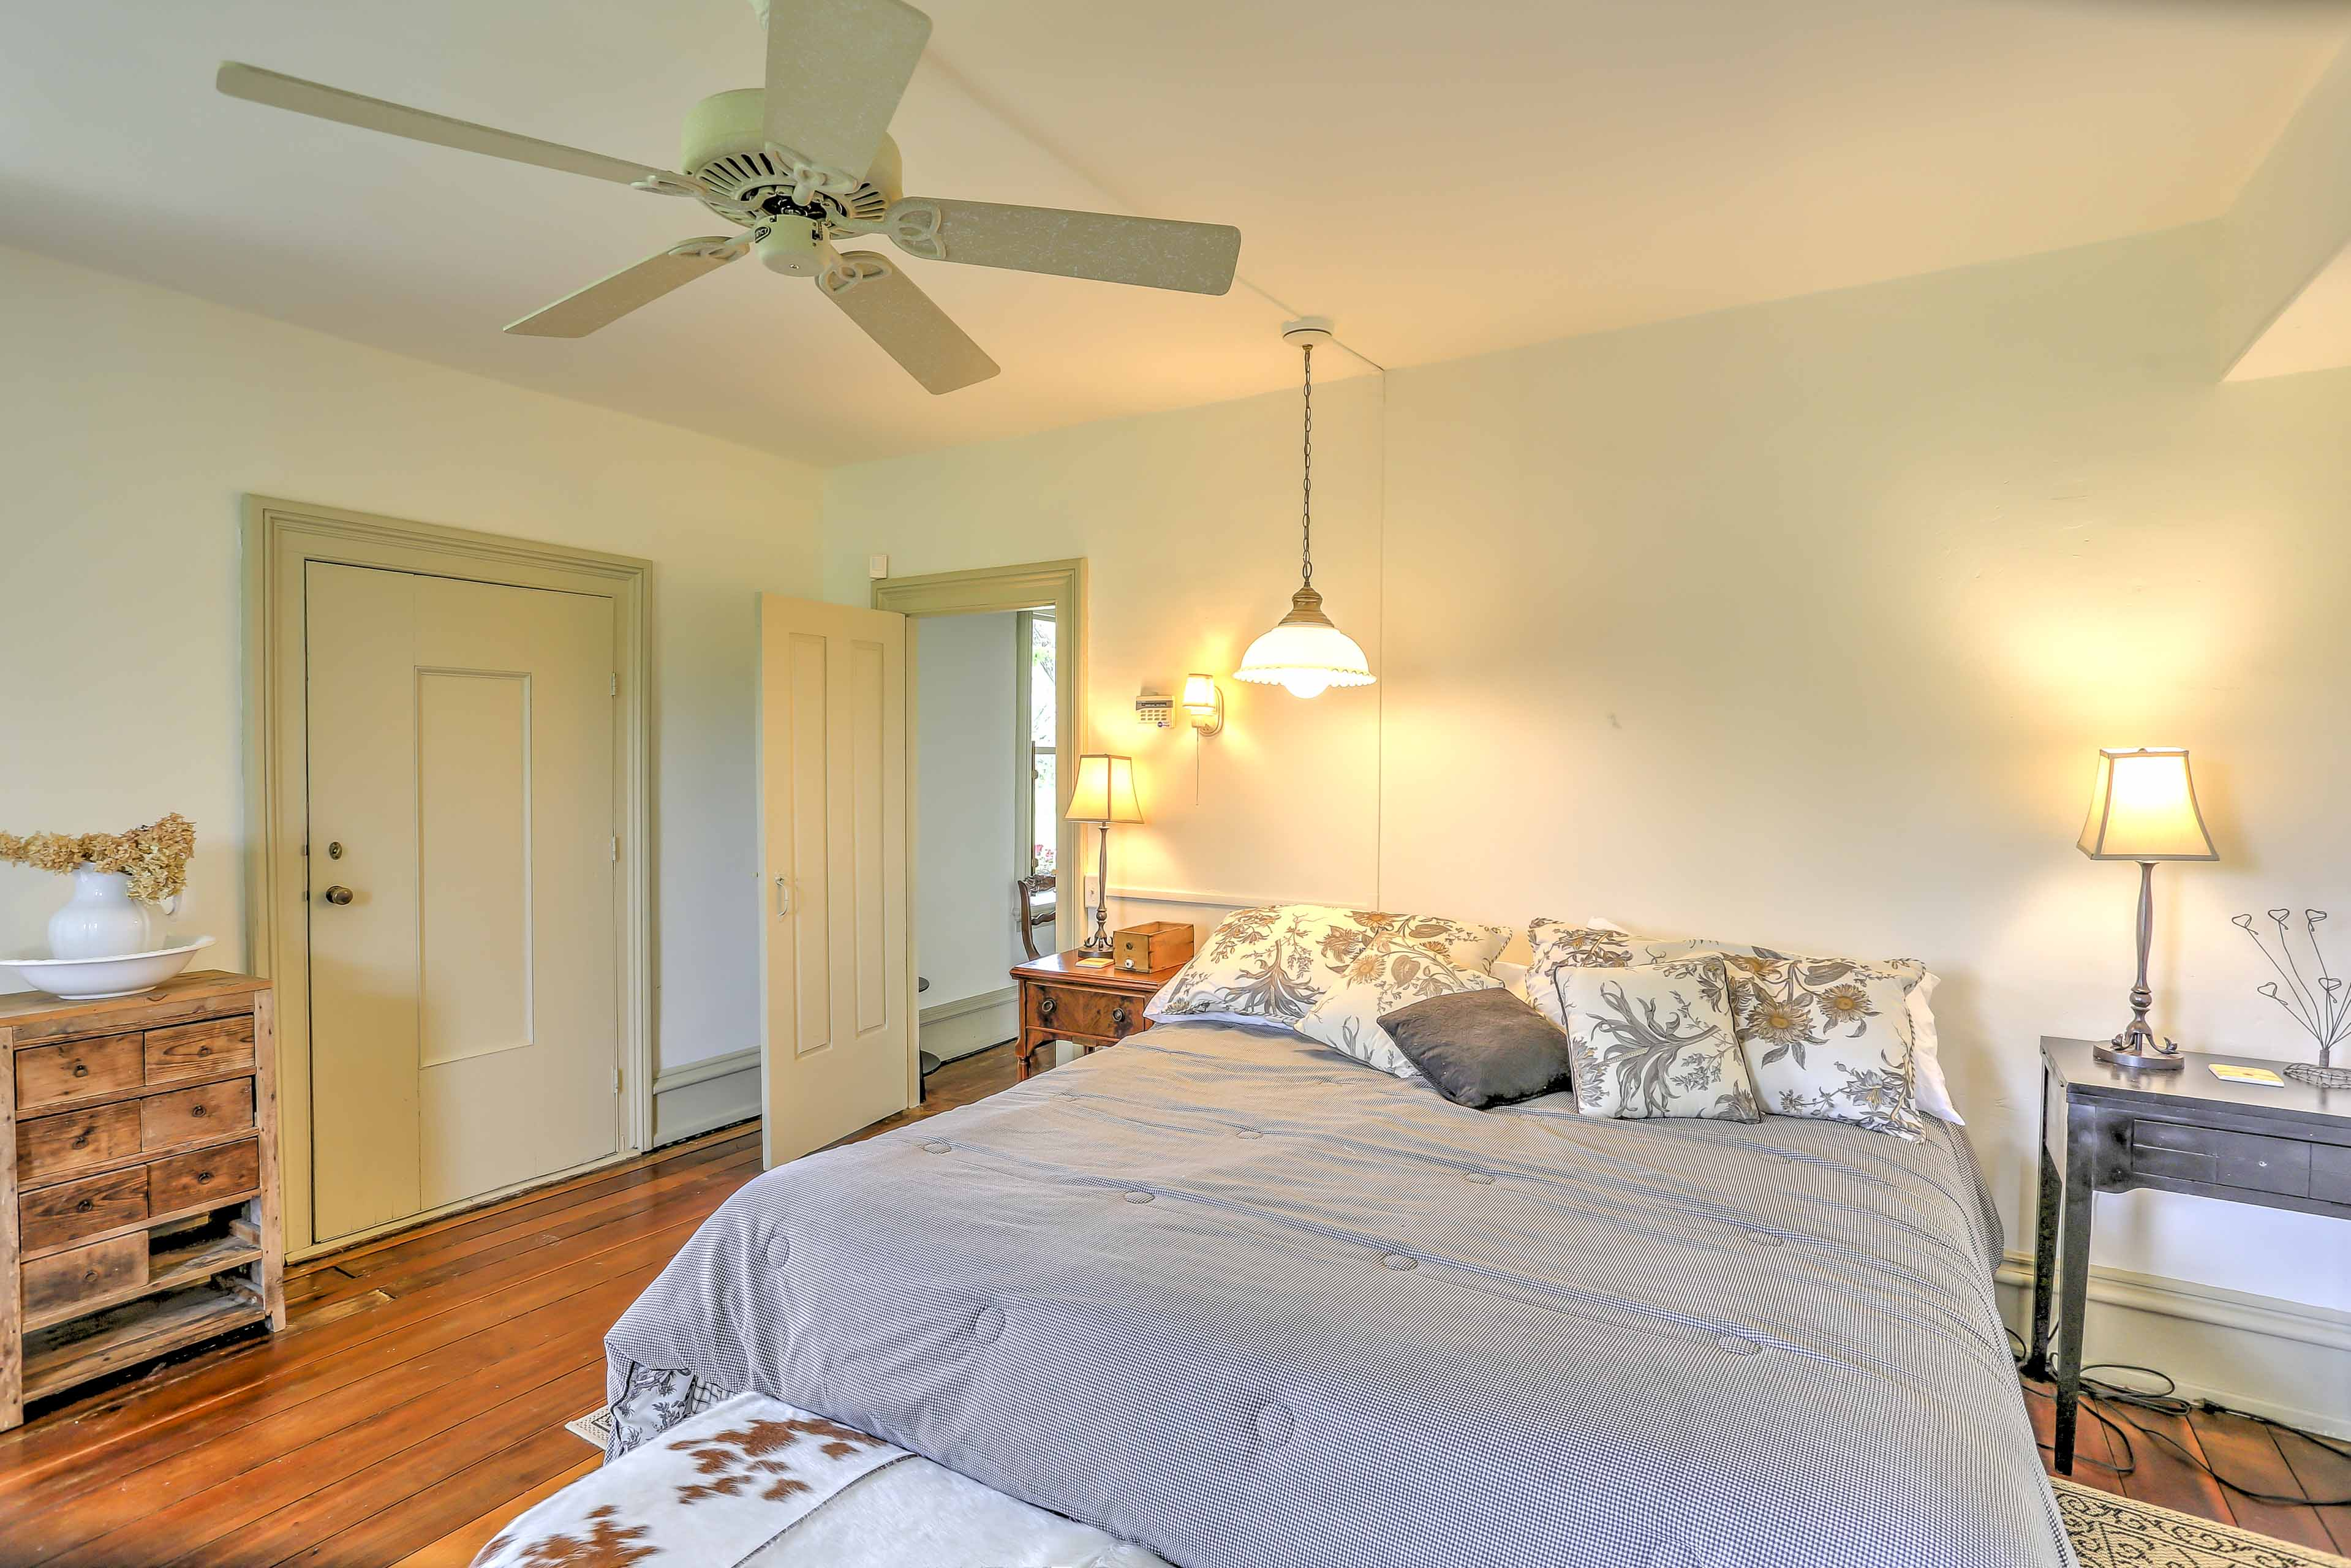 The master bedroom boasts a king-sized bed and a pristine en suite bathroom.